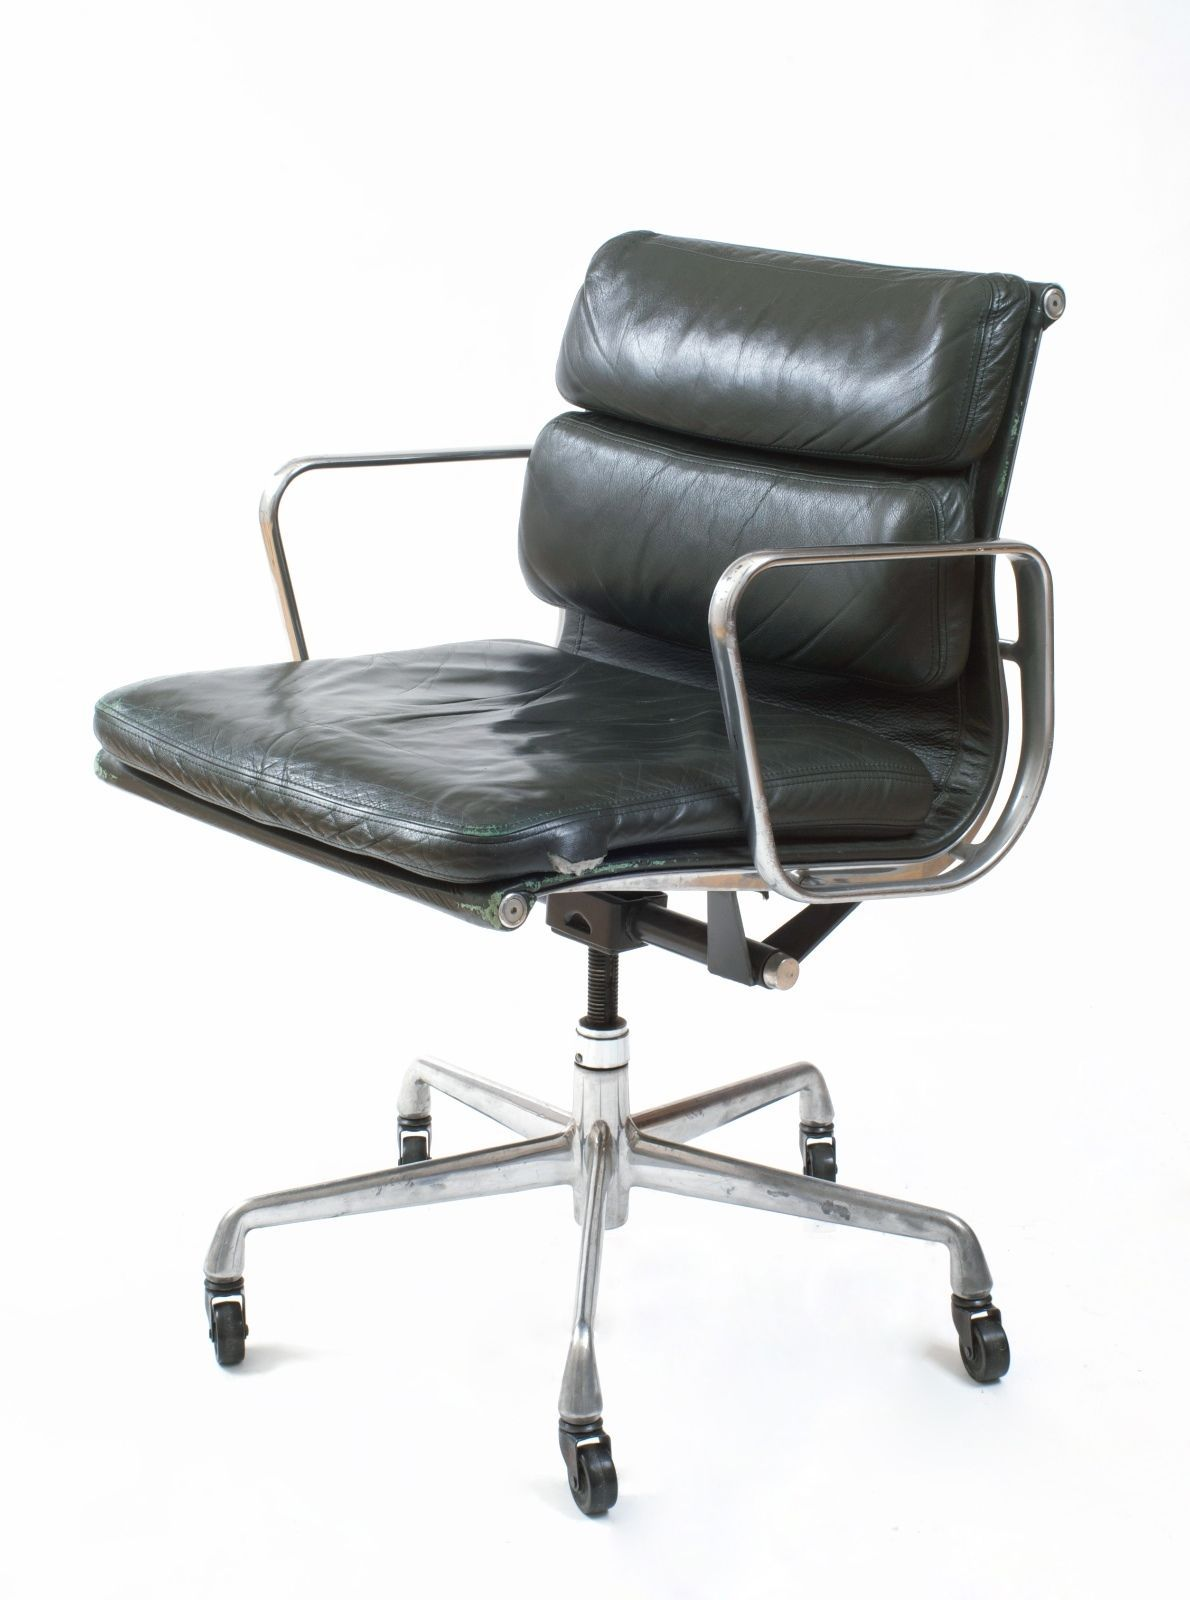 Eames Chair Herman Miller Ebay Vintage Eames Soft Pad Management Chair For Herman Miller